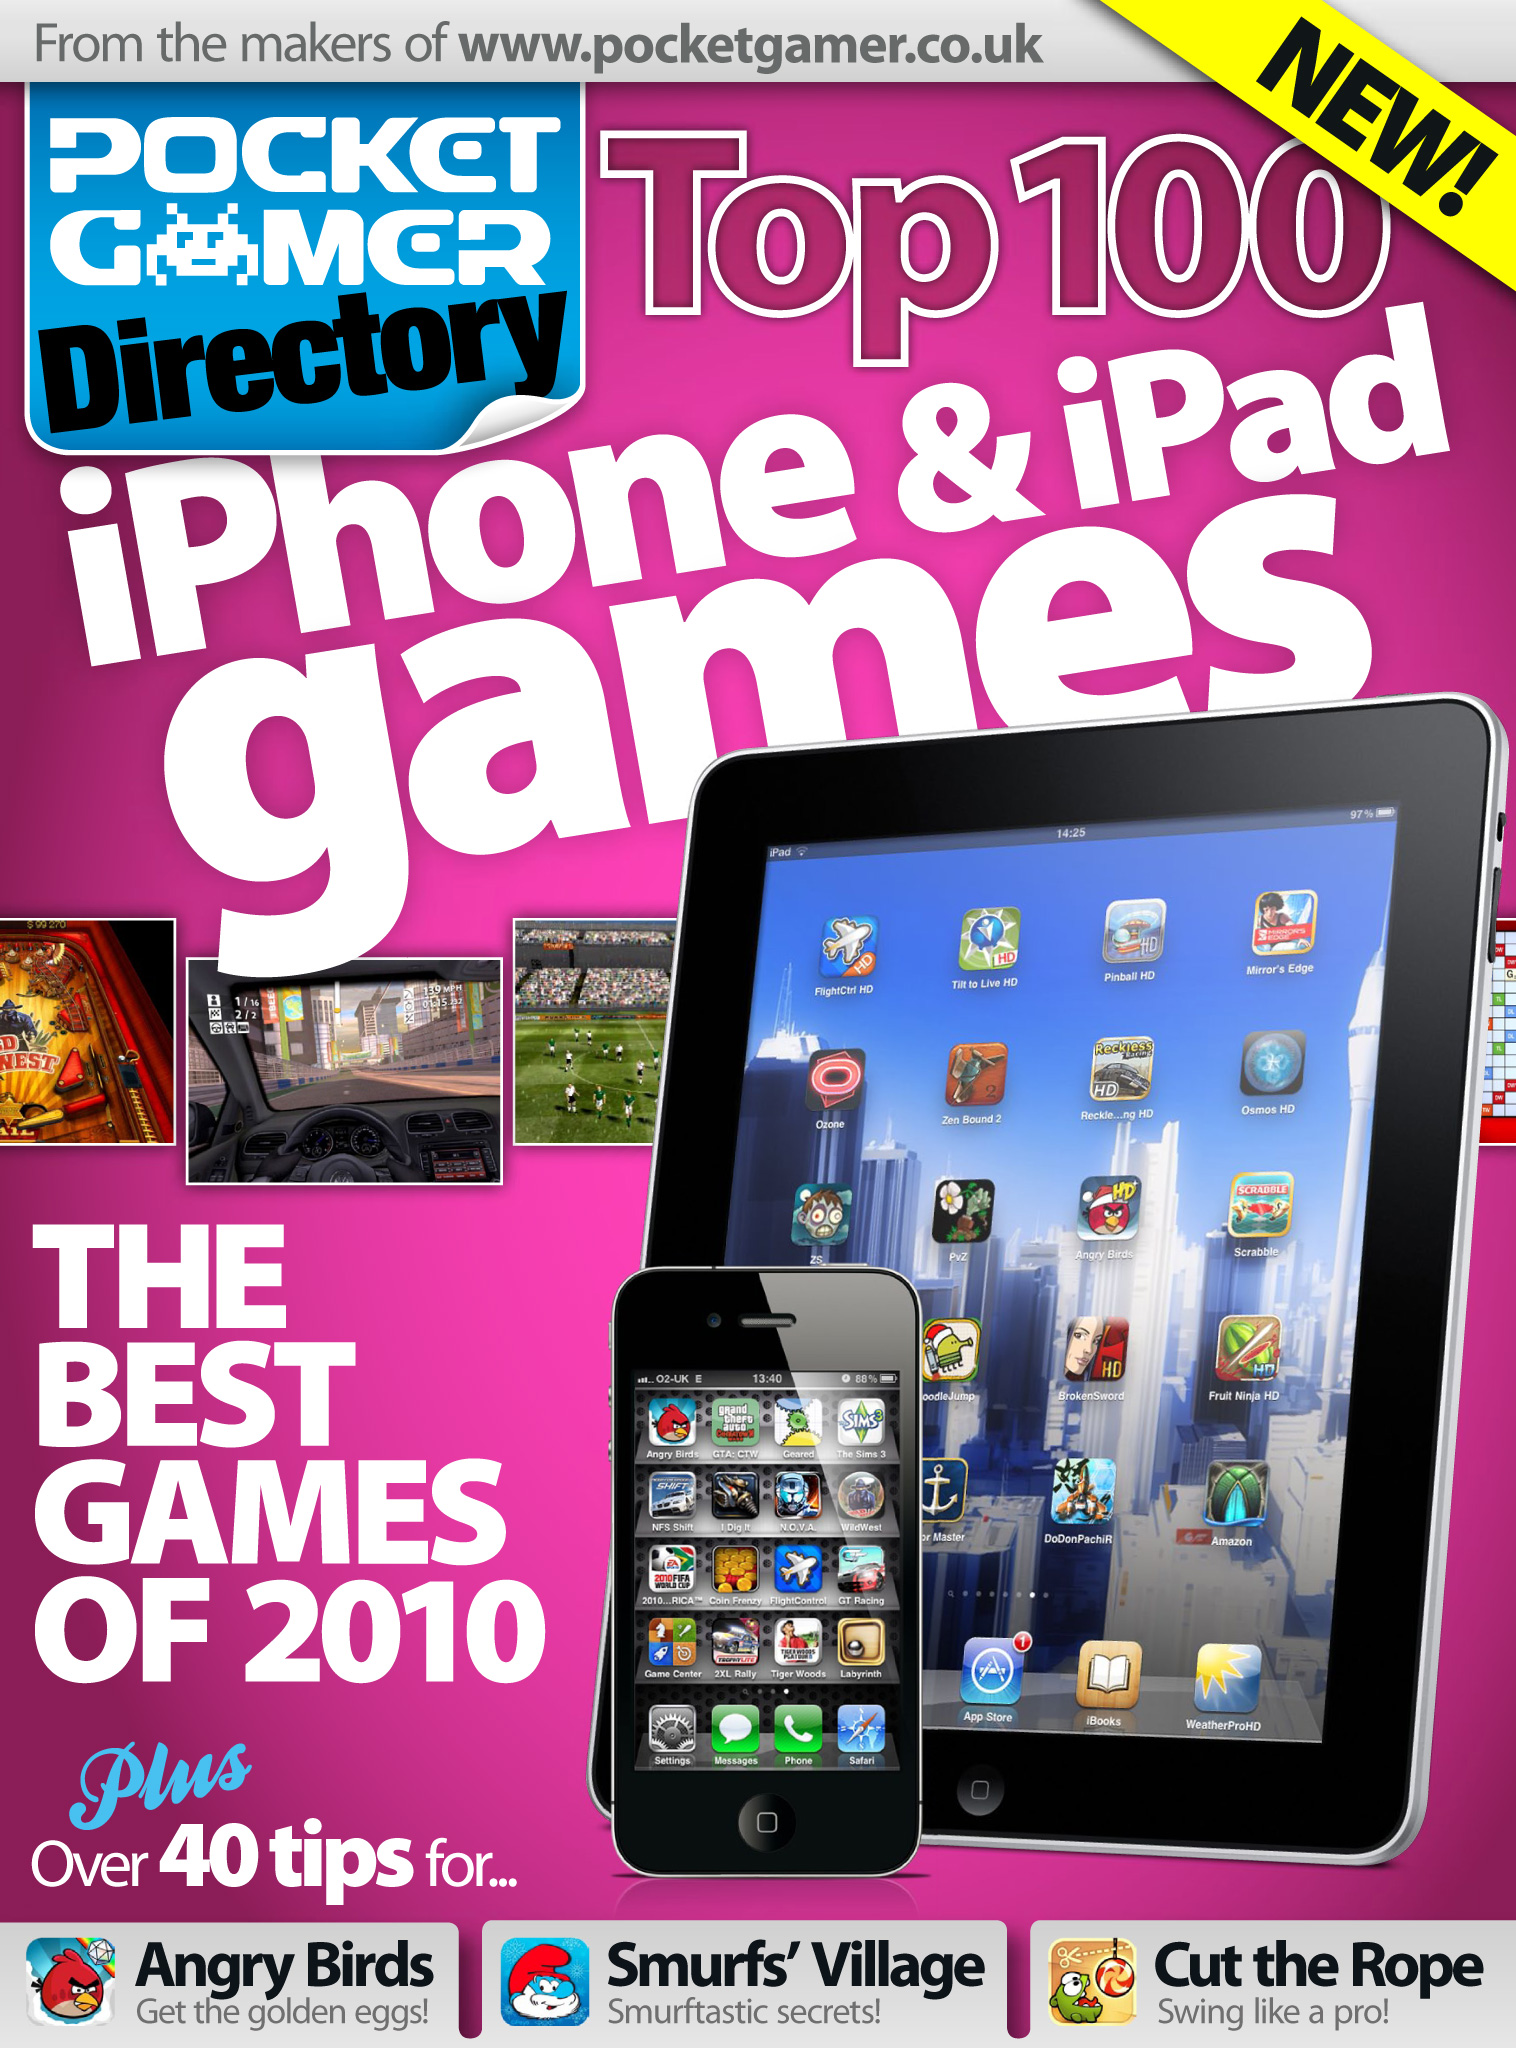 Pocket Gamer Directory Top 100 iPhone and iPad Games of 2010 guide is out now